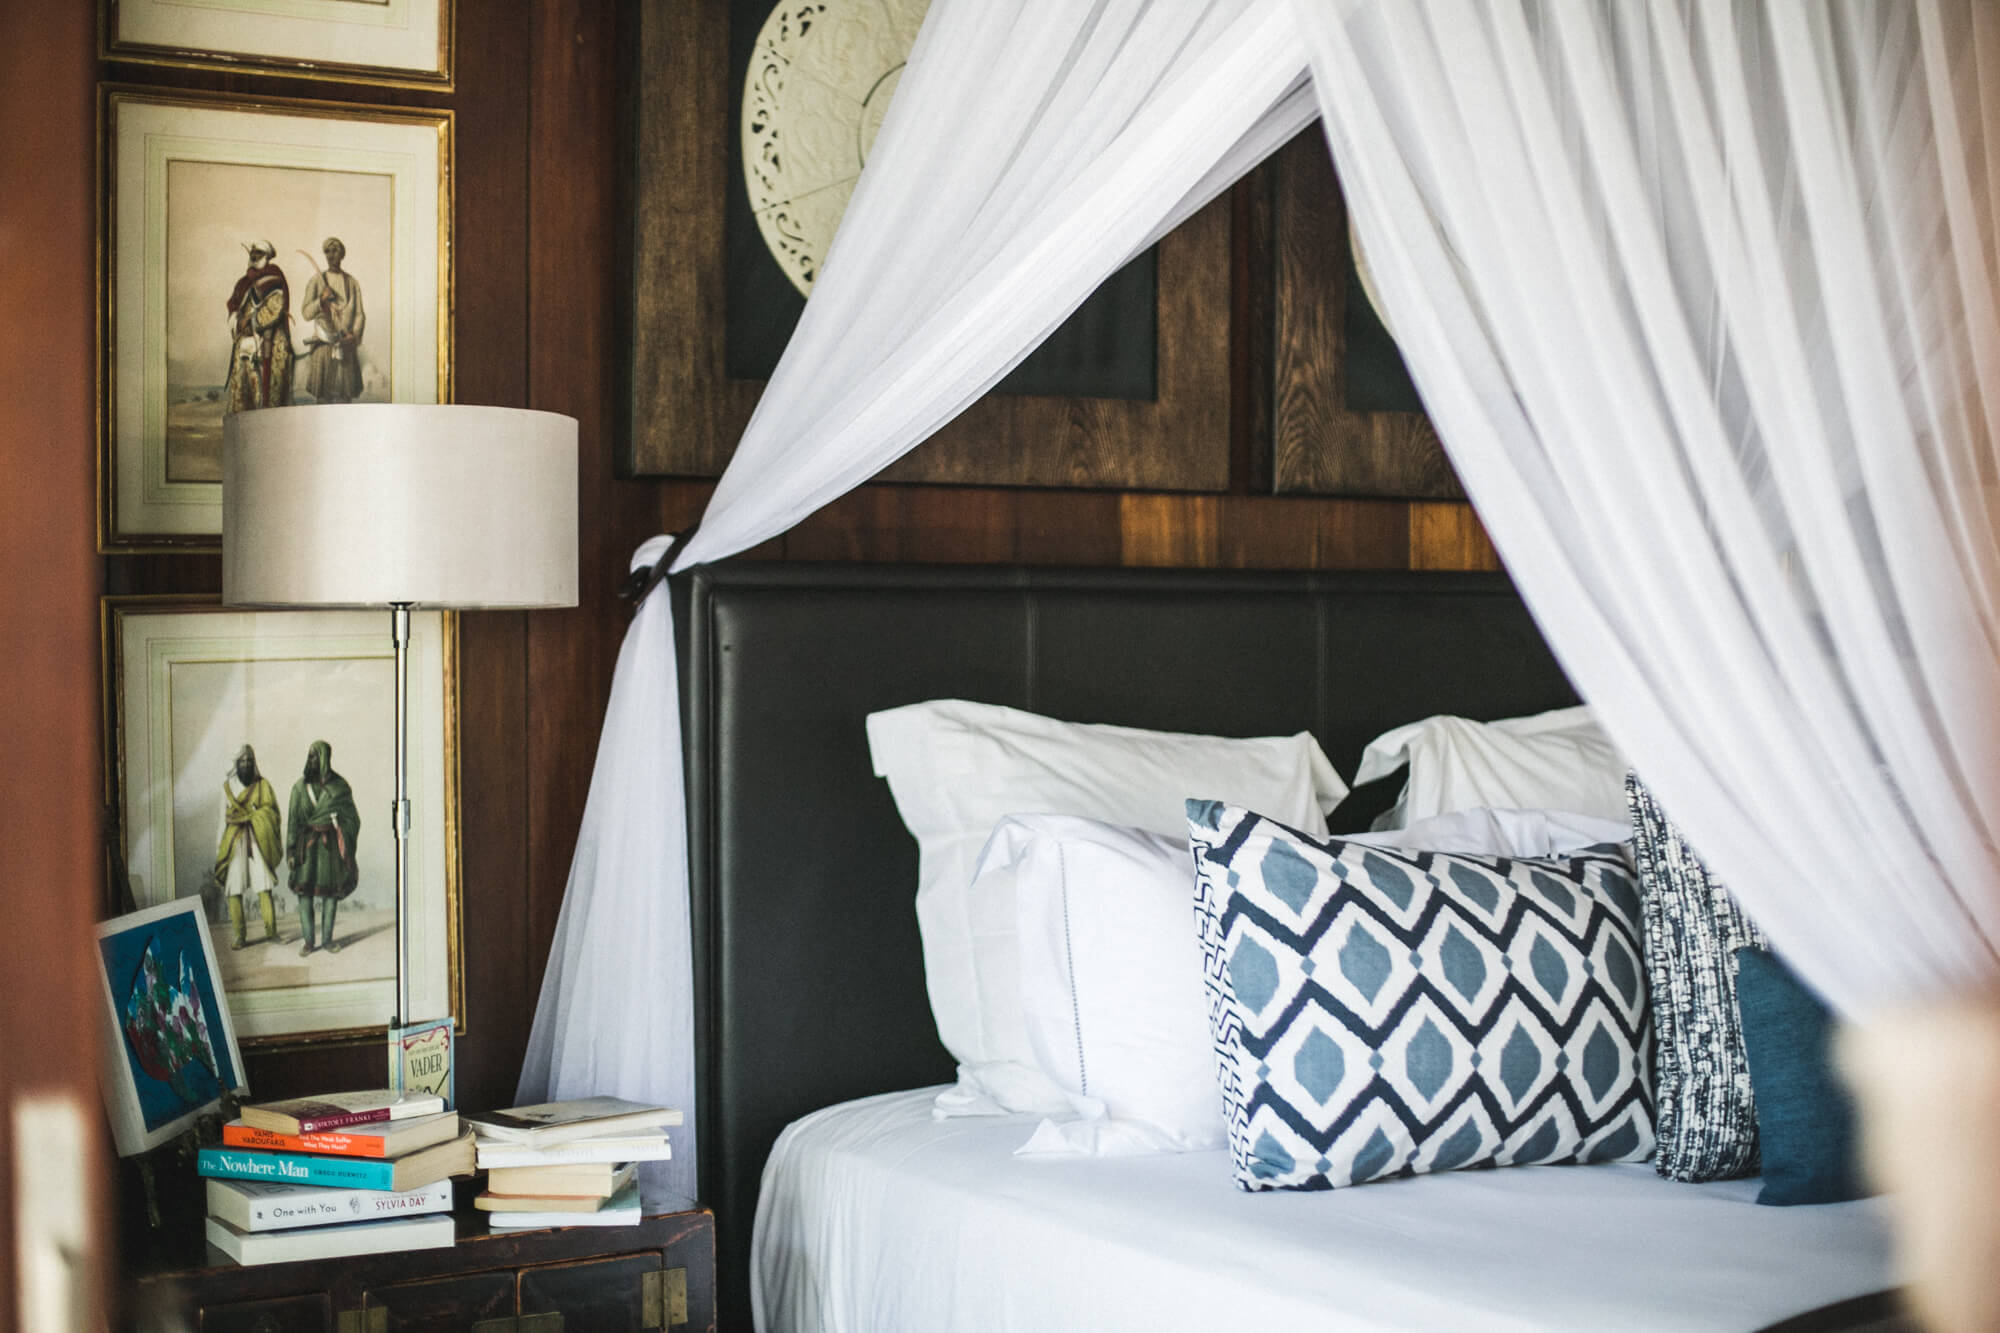 Details-of-the-interior-of-the-rooms-on-The-Place-Retreats-Bali